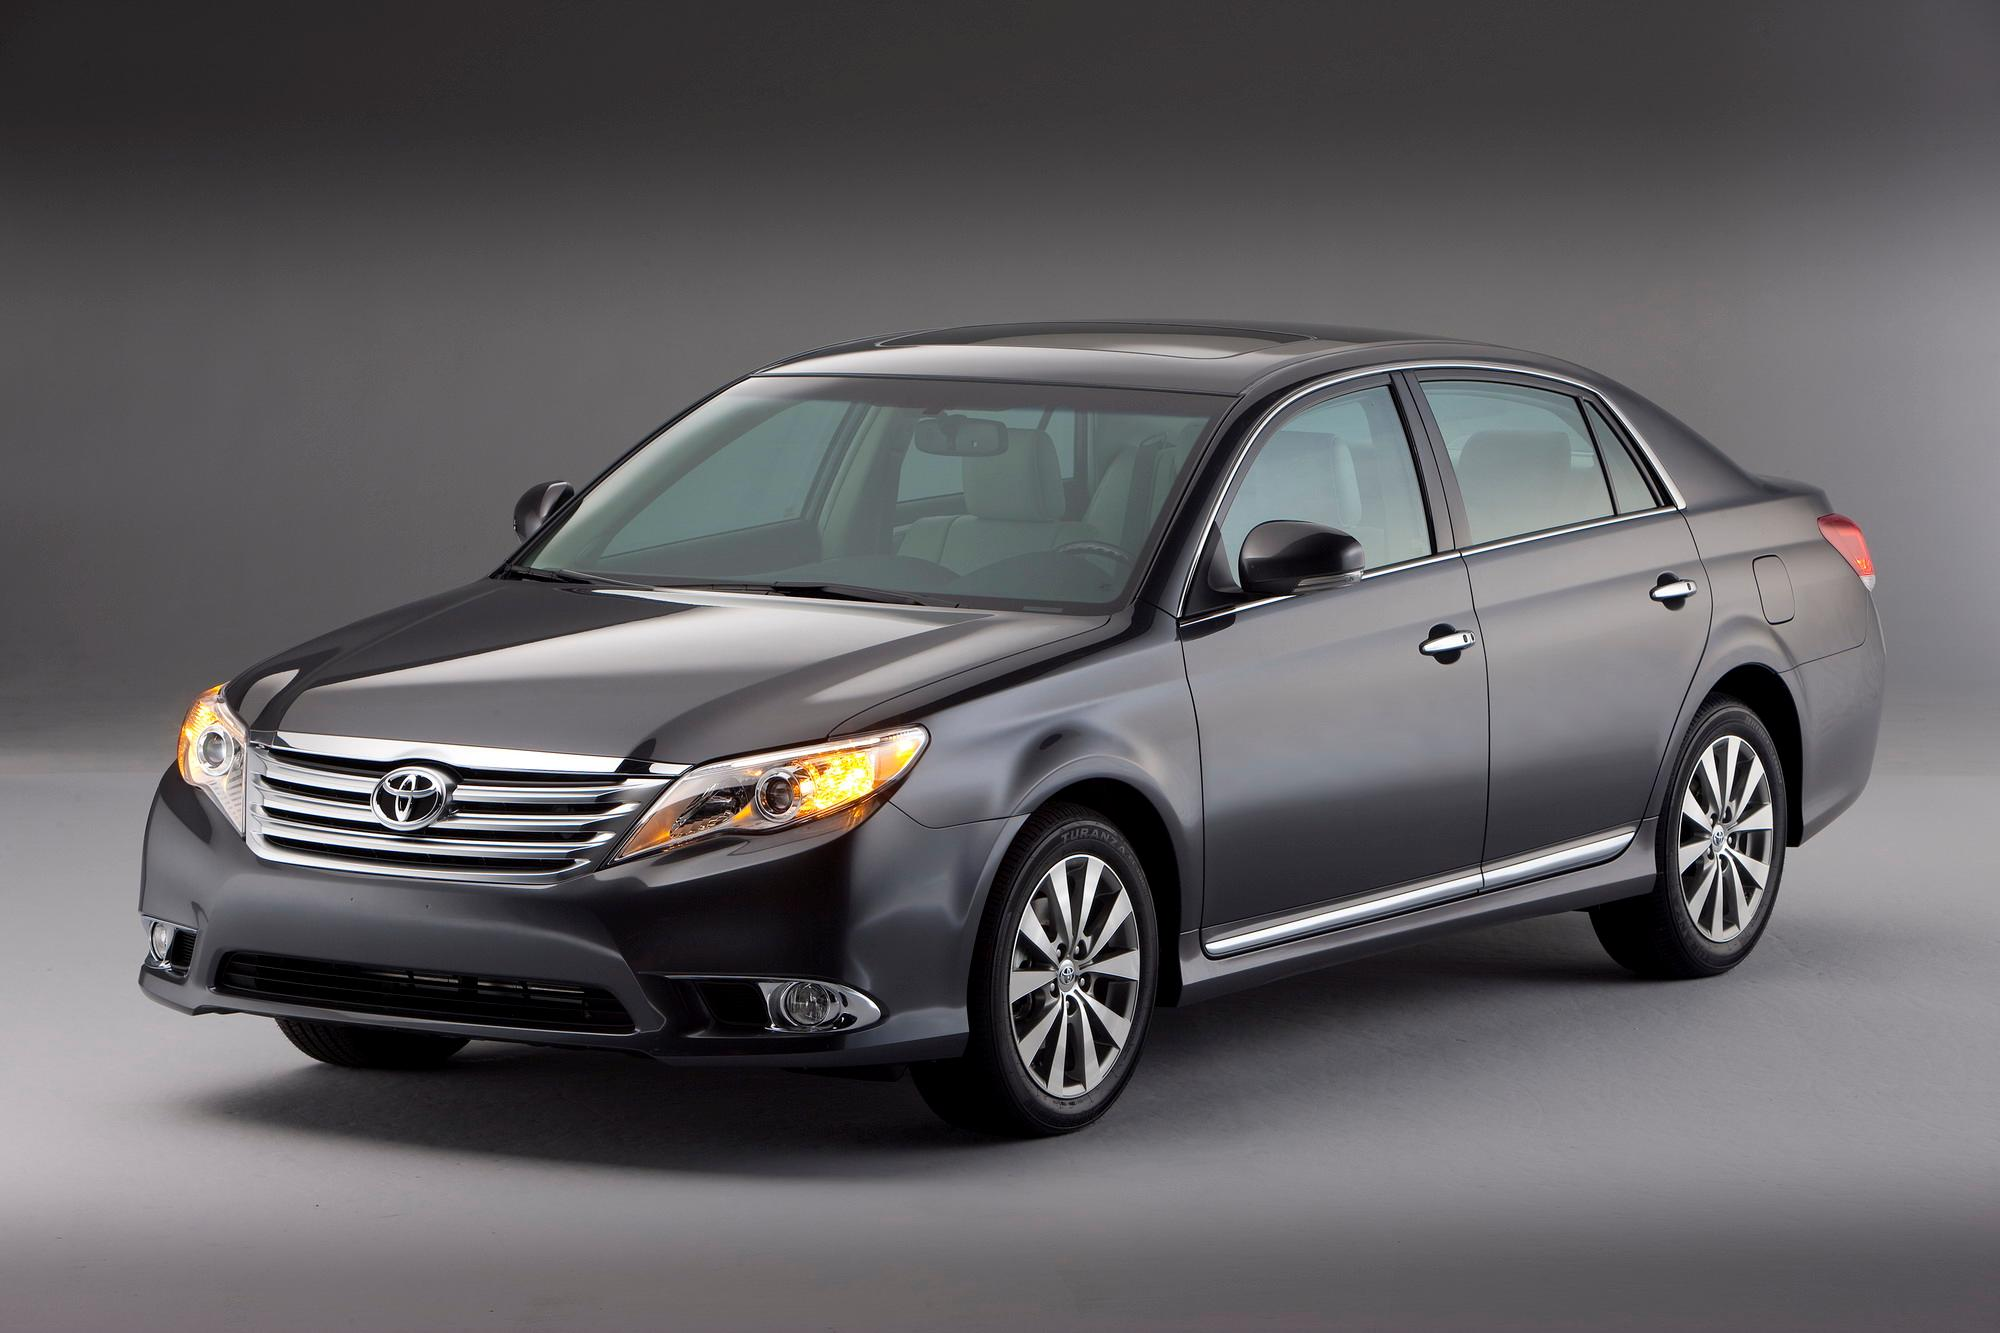 2011 toyota avalon pictures photos wallpapers top speed. Black Bedroom Furniture Sets. Home Design Ideas